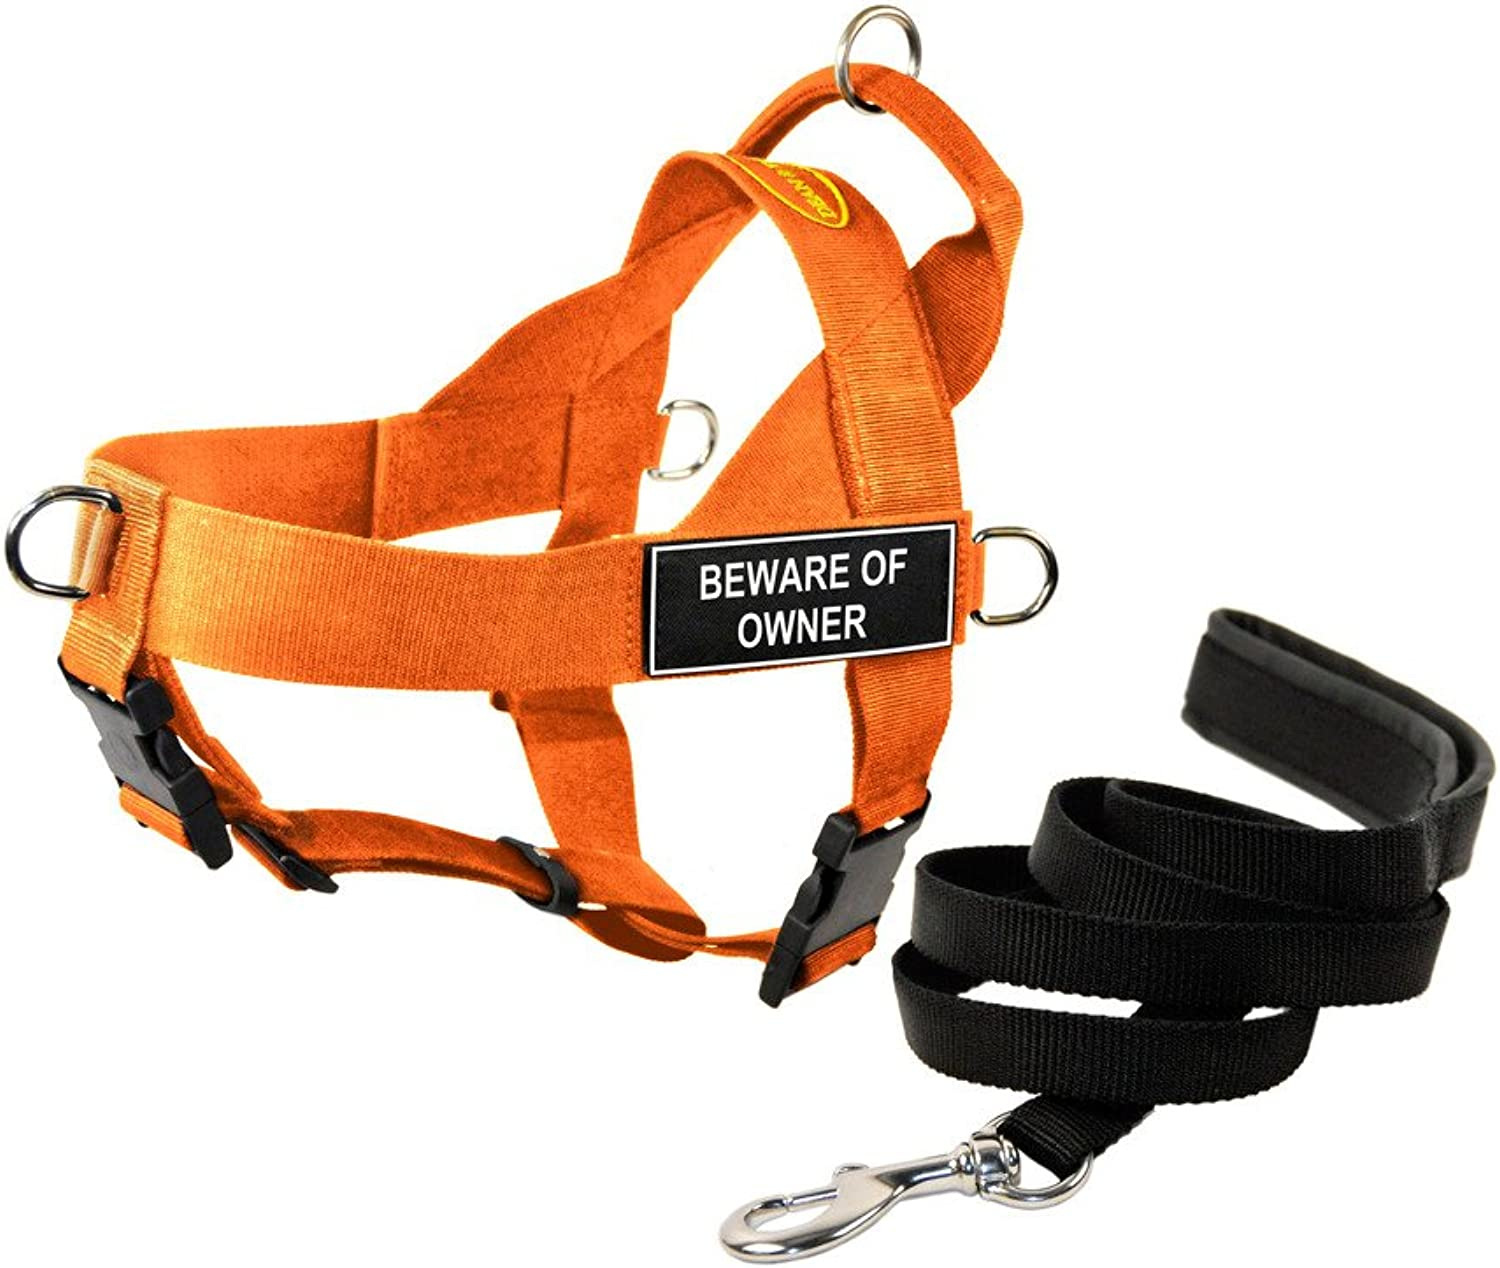 Dean & Tyler DT Universal No Pull Dog Harness with Beware Of Owner Patches and Puppy Leash, orange, XLarge